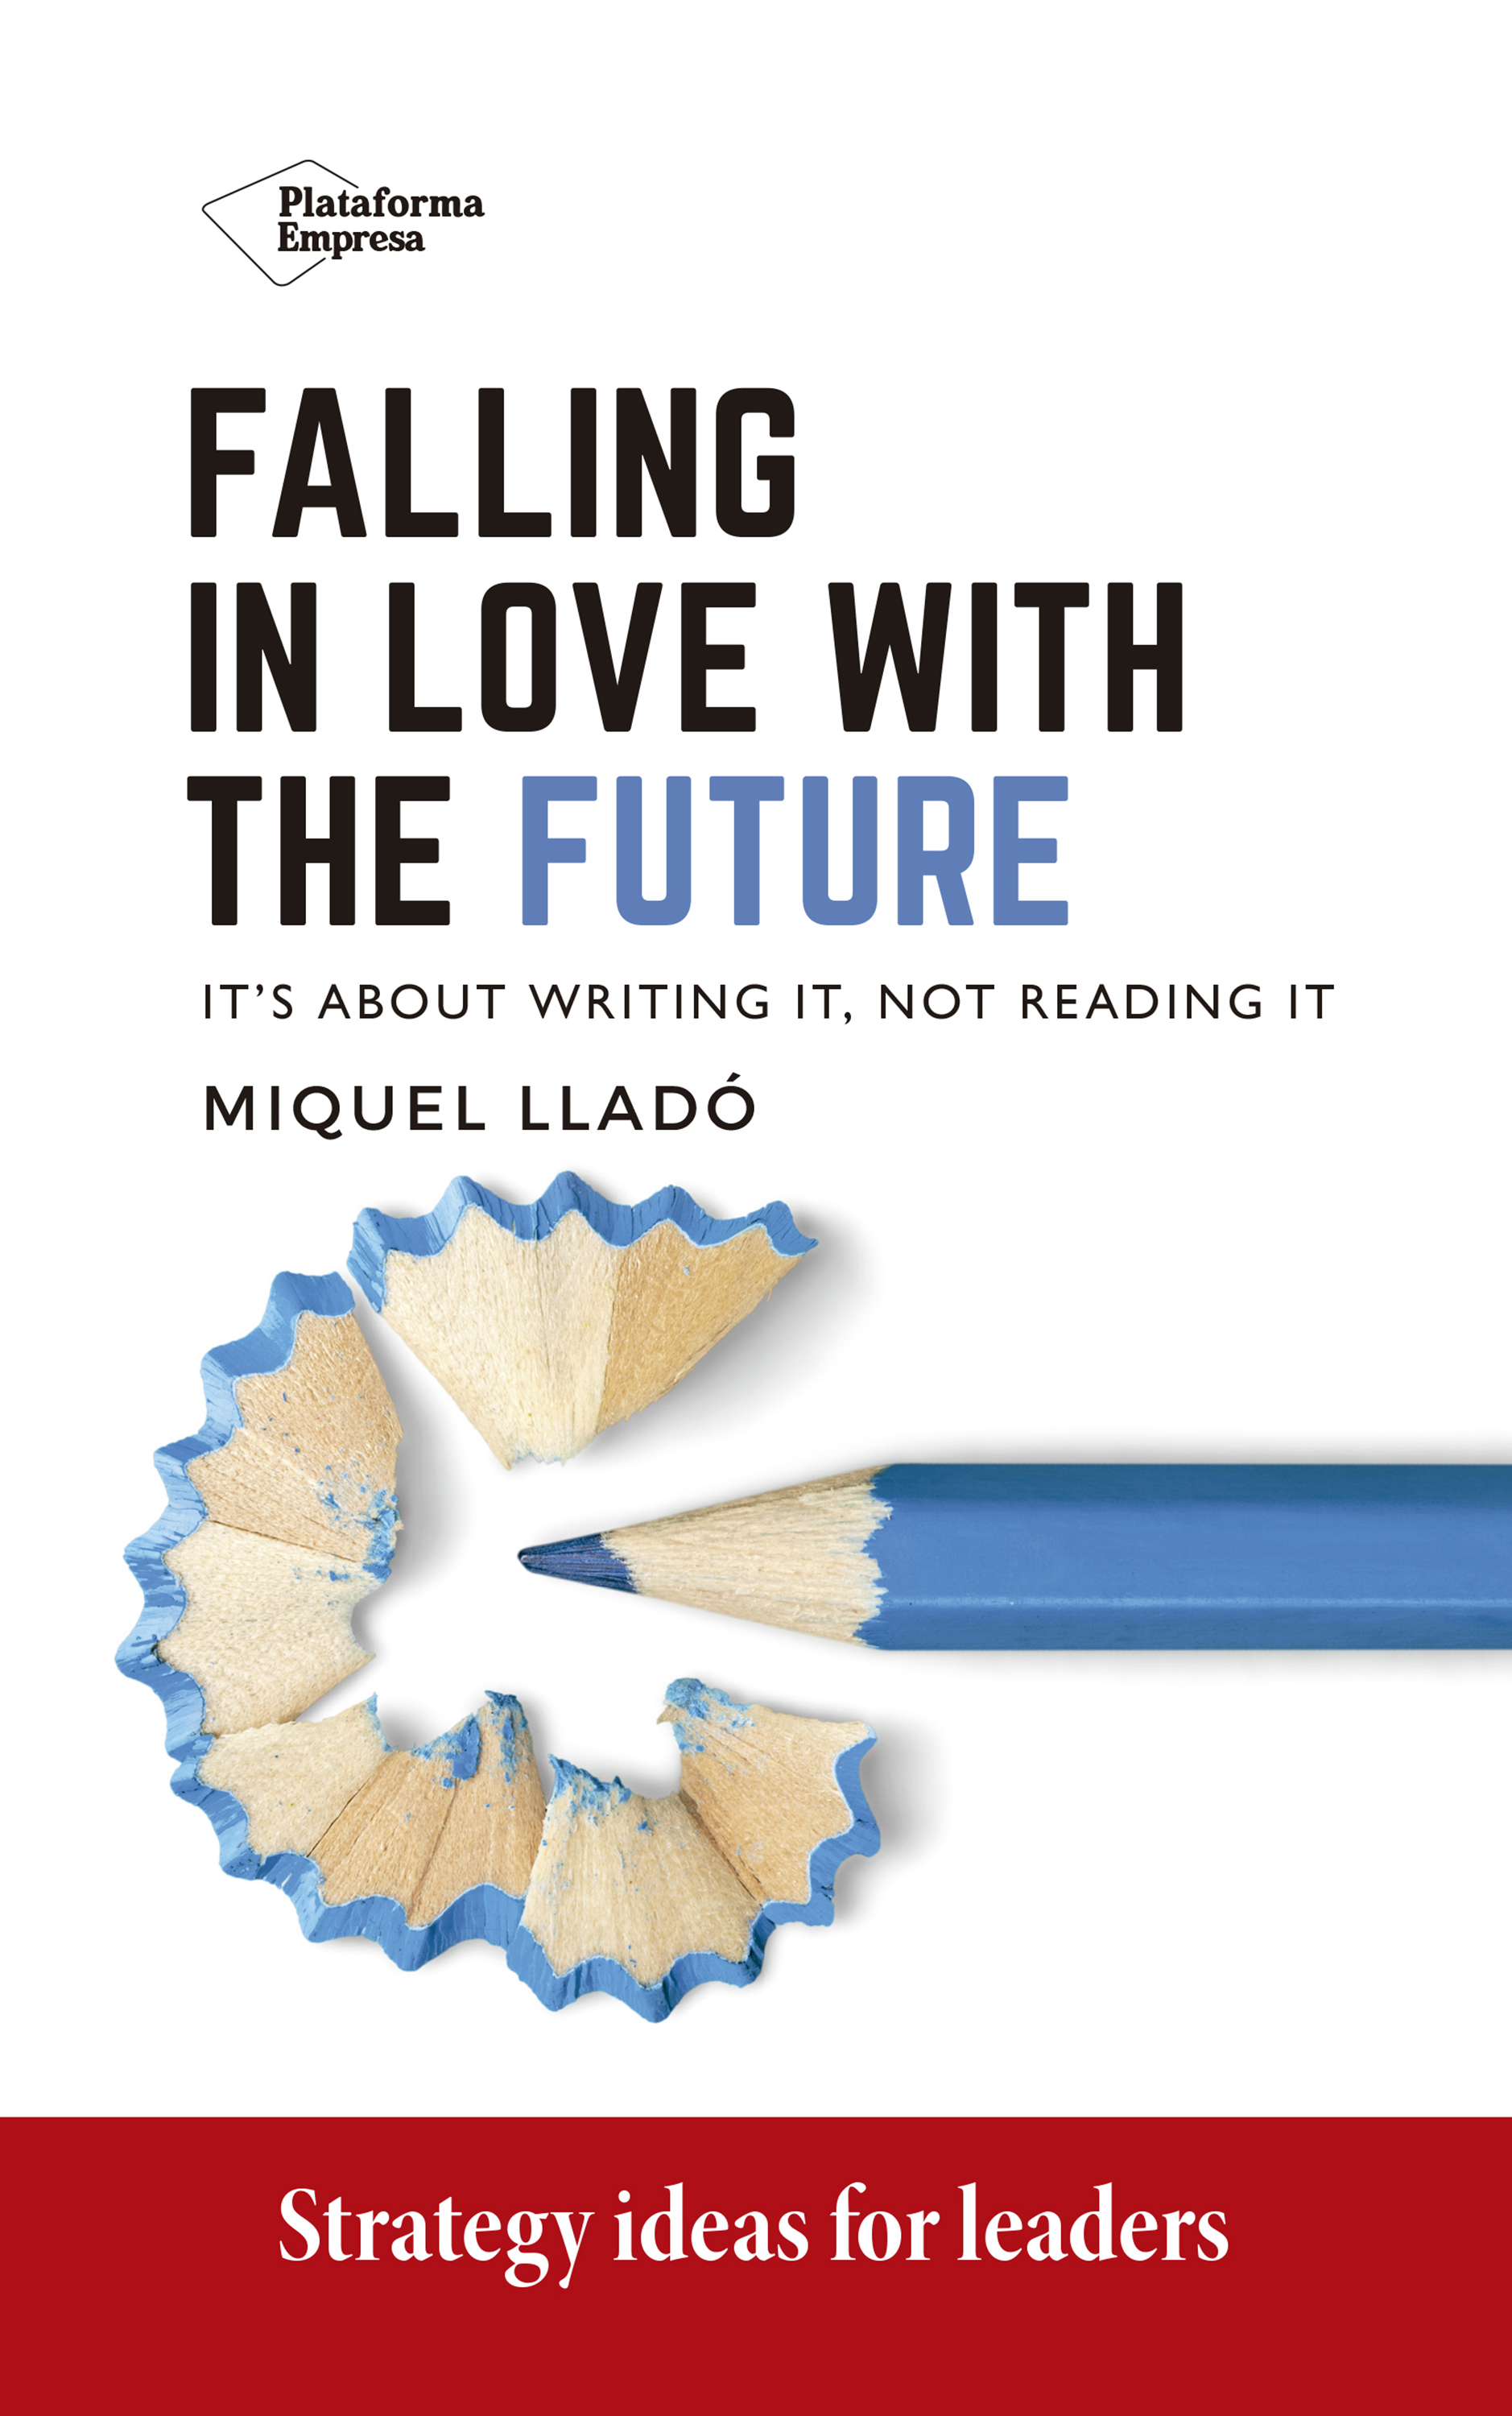 Falling in love with the future (9788418582318)